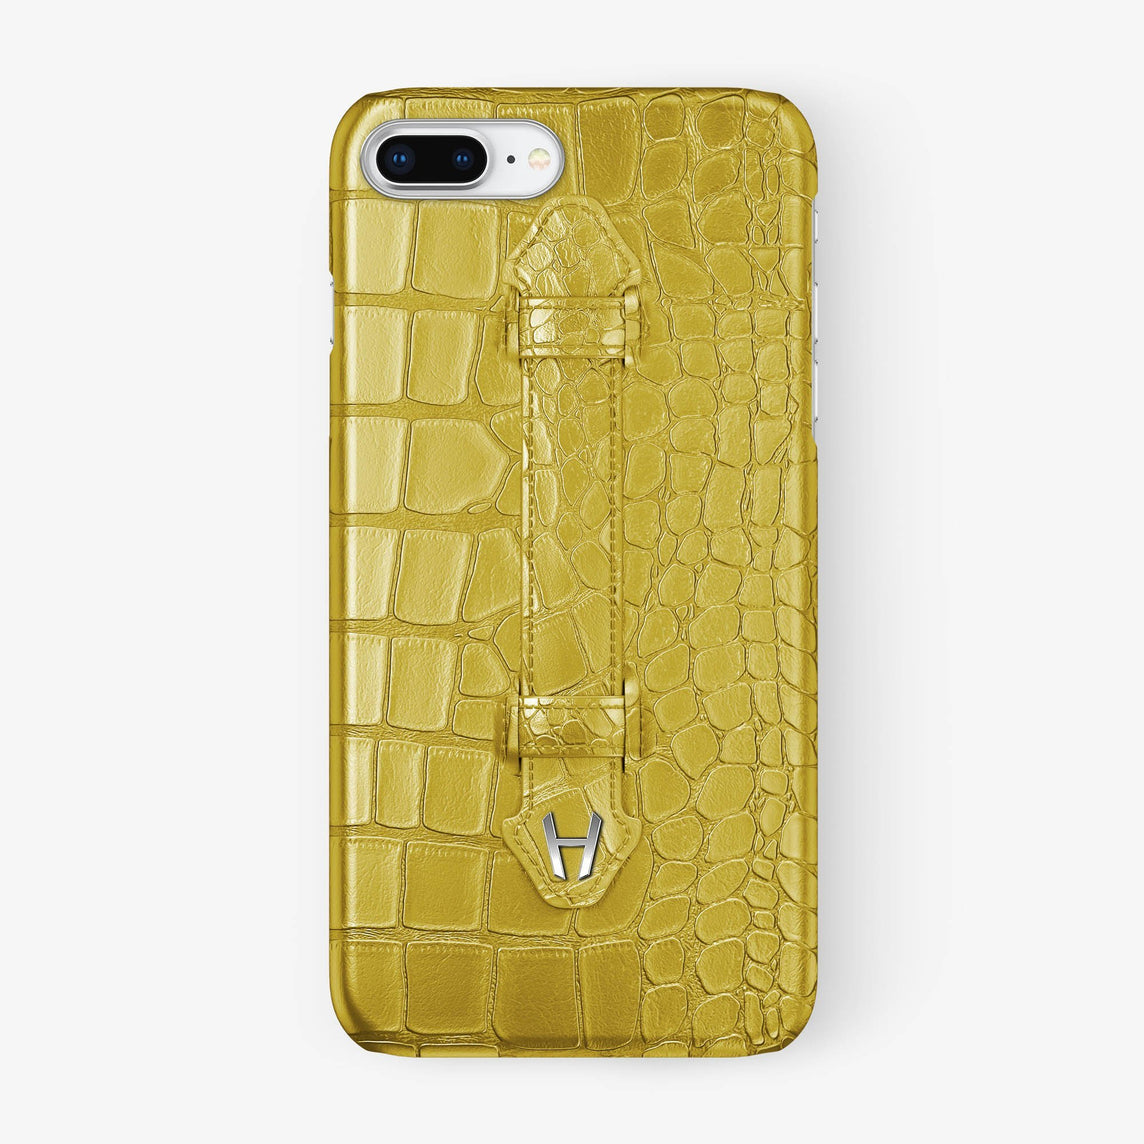 Alligator Finger Case iPhone 7/8 Plus | Yellow - Stainless Steel